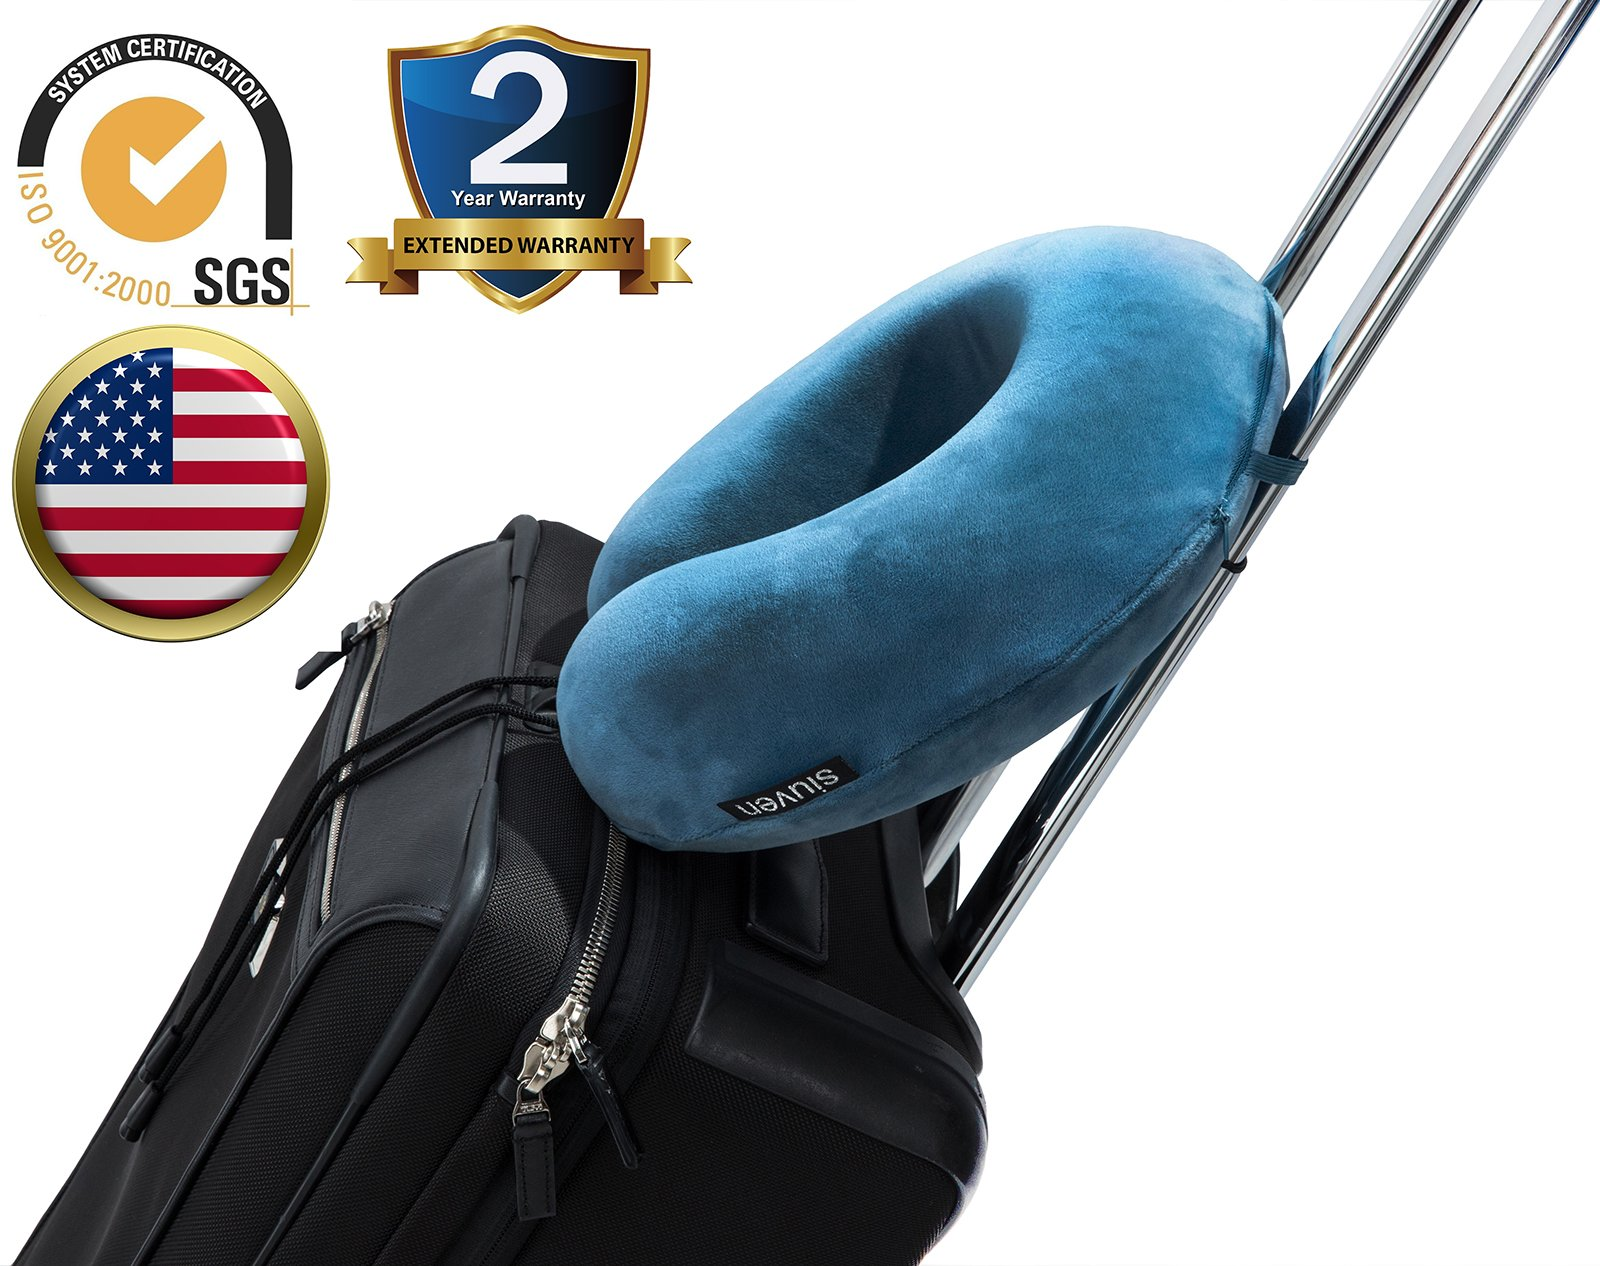 Comfort Travel Flight Pillow Relieve Neck Pain with Adjustable Toggle and Luxury Velour Cover Natural Memory Foam Blue Siuven